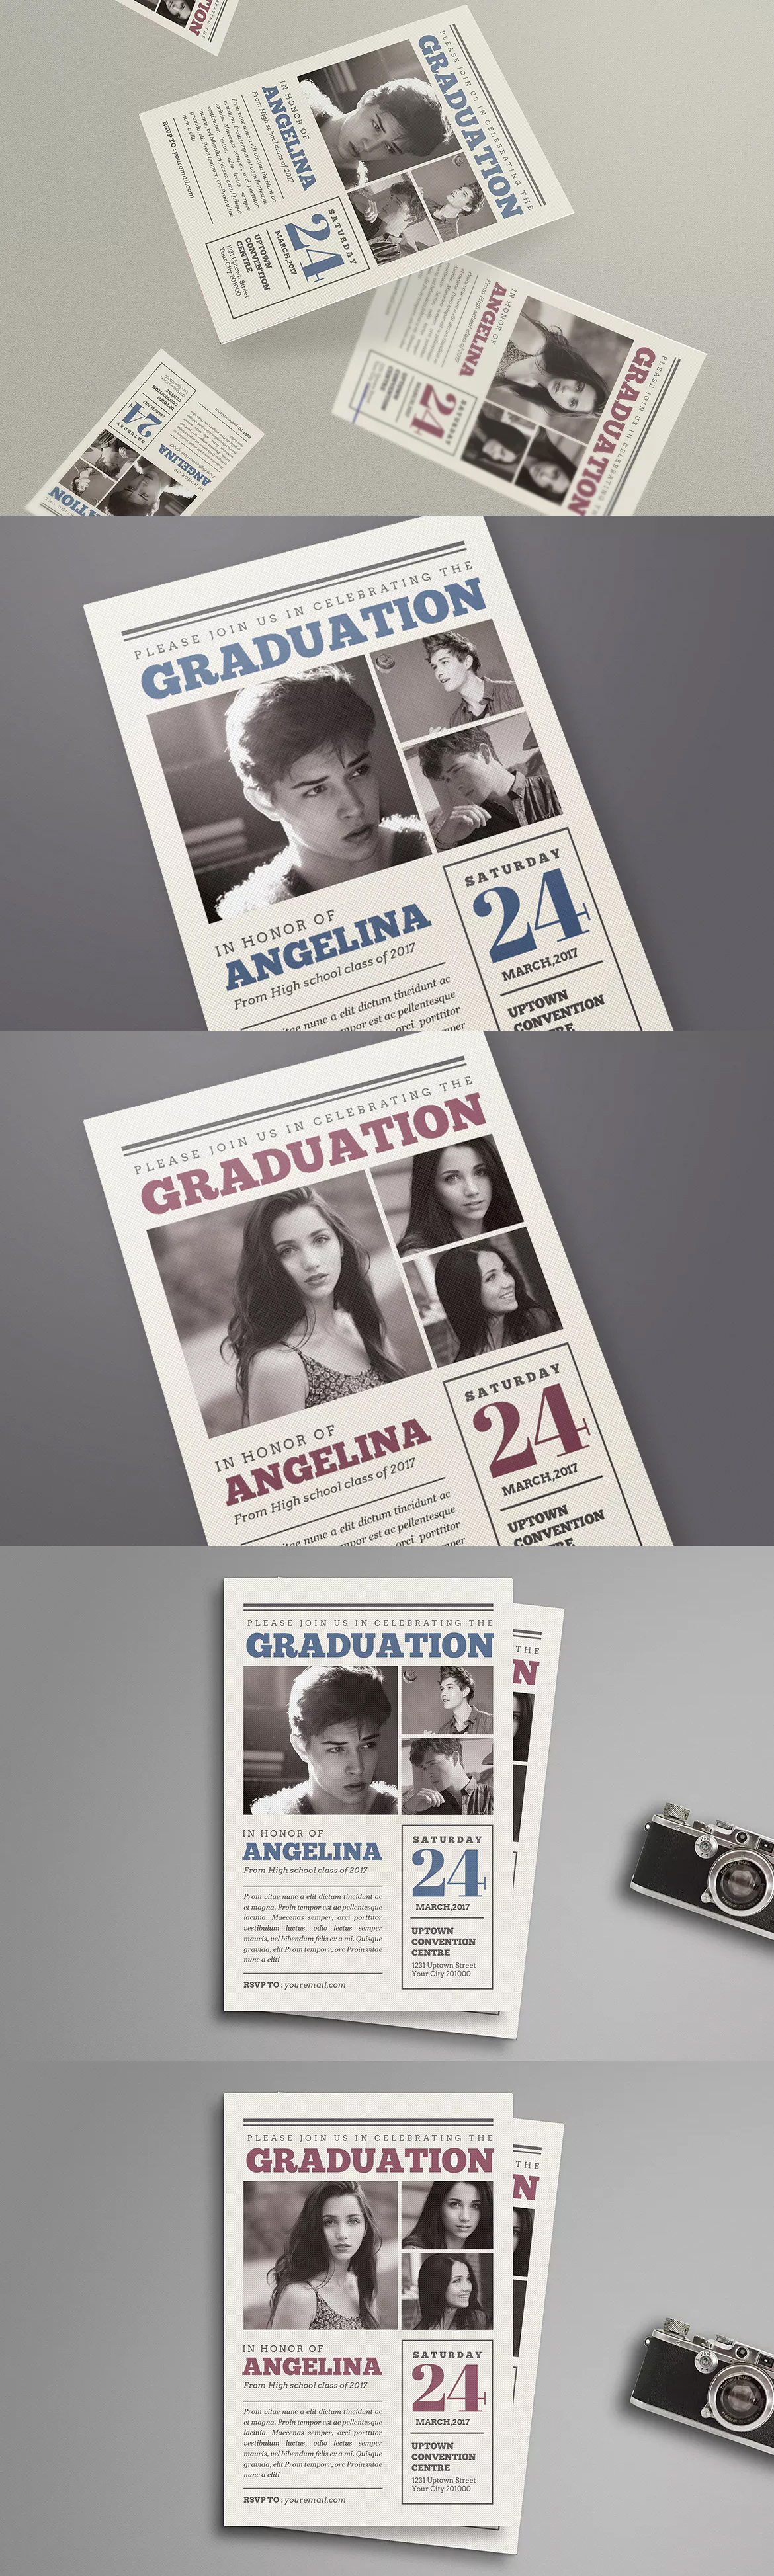 Newspaper Style Graduation Invitation Template PSD | Invitation Card ...